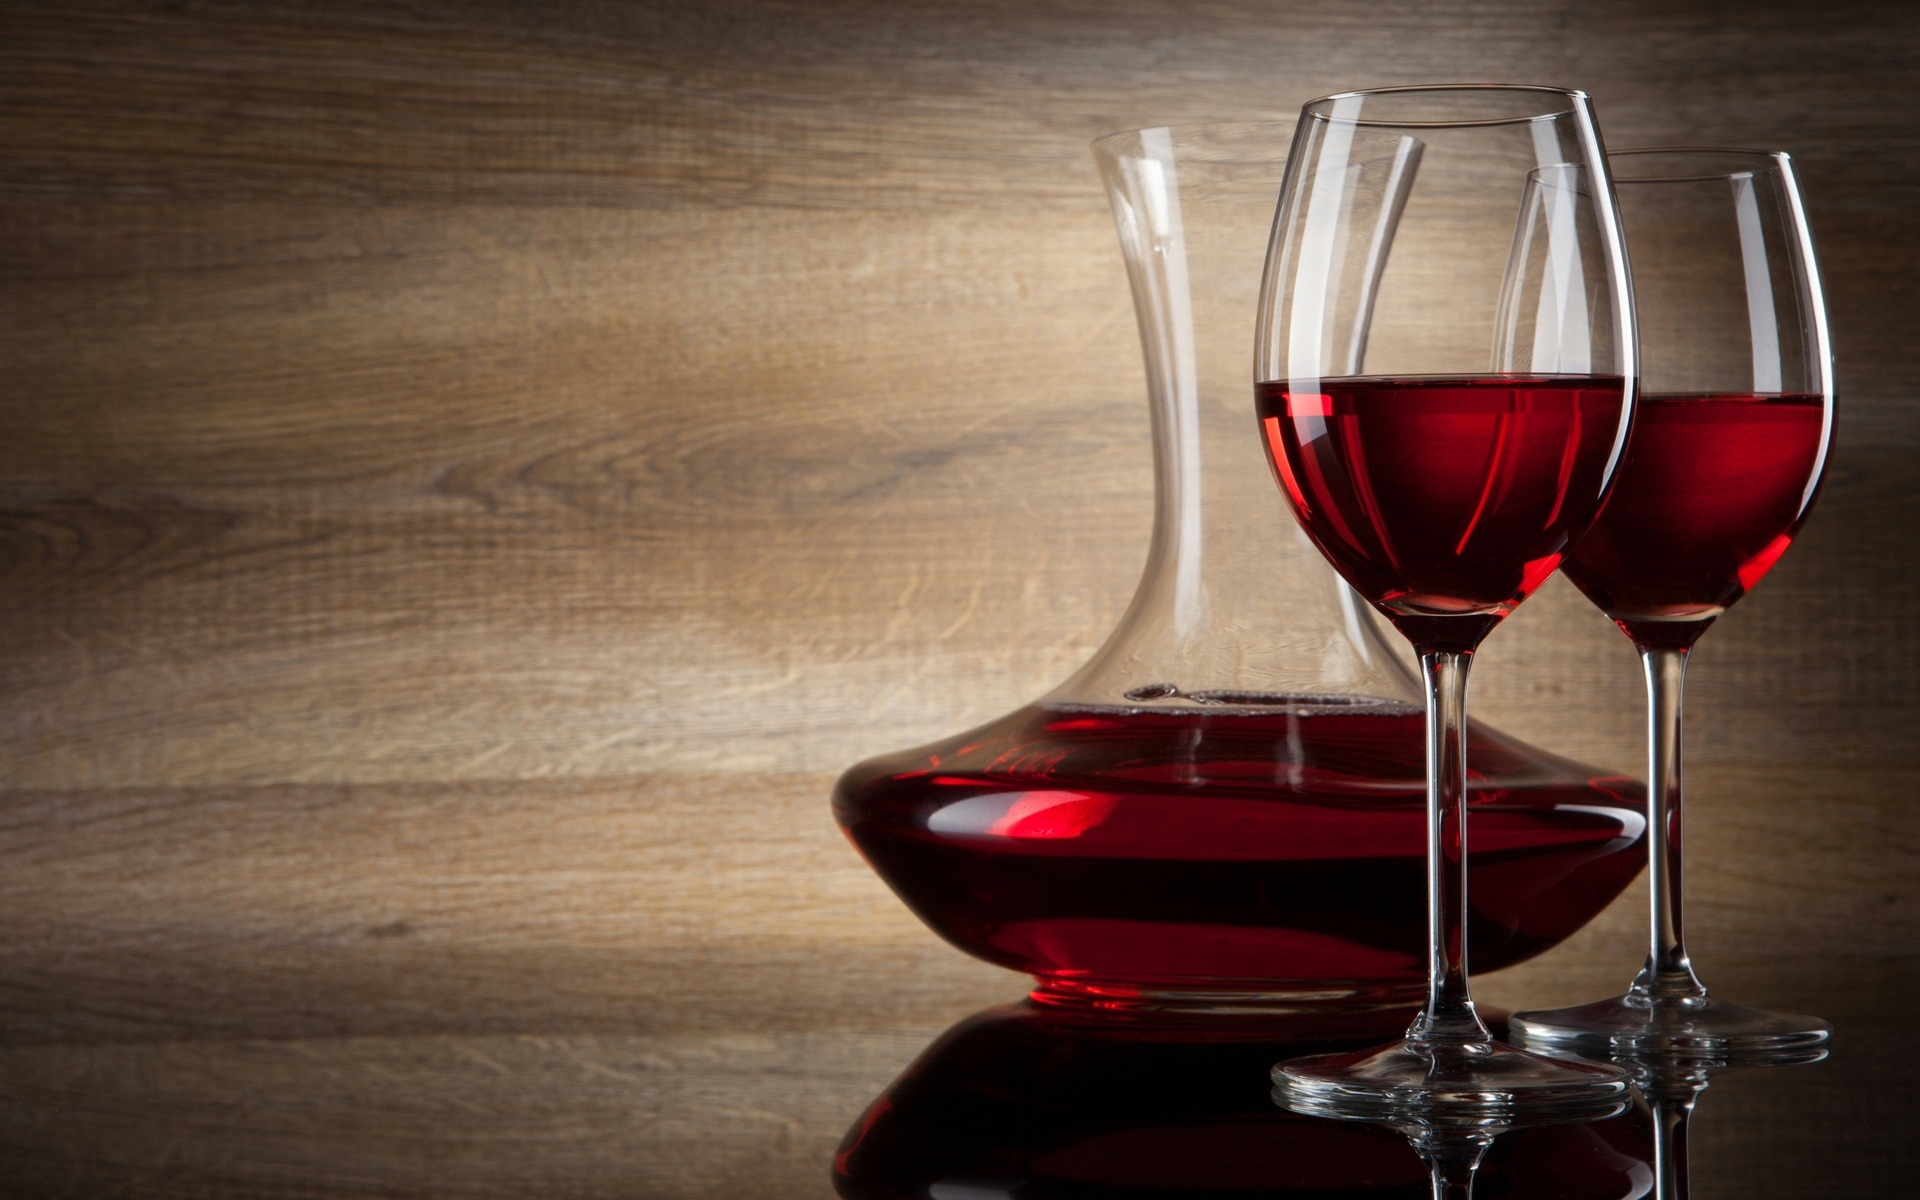 Wallpaper Red Wine Bottle And Glass Cups 1920x1200 Hd Picture Image